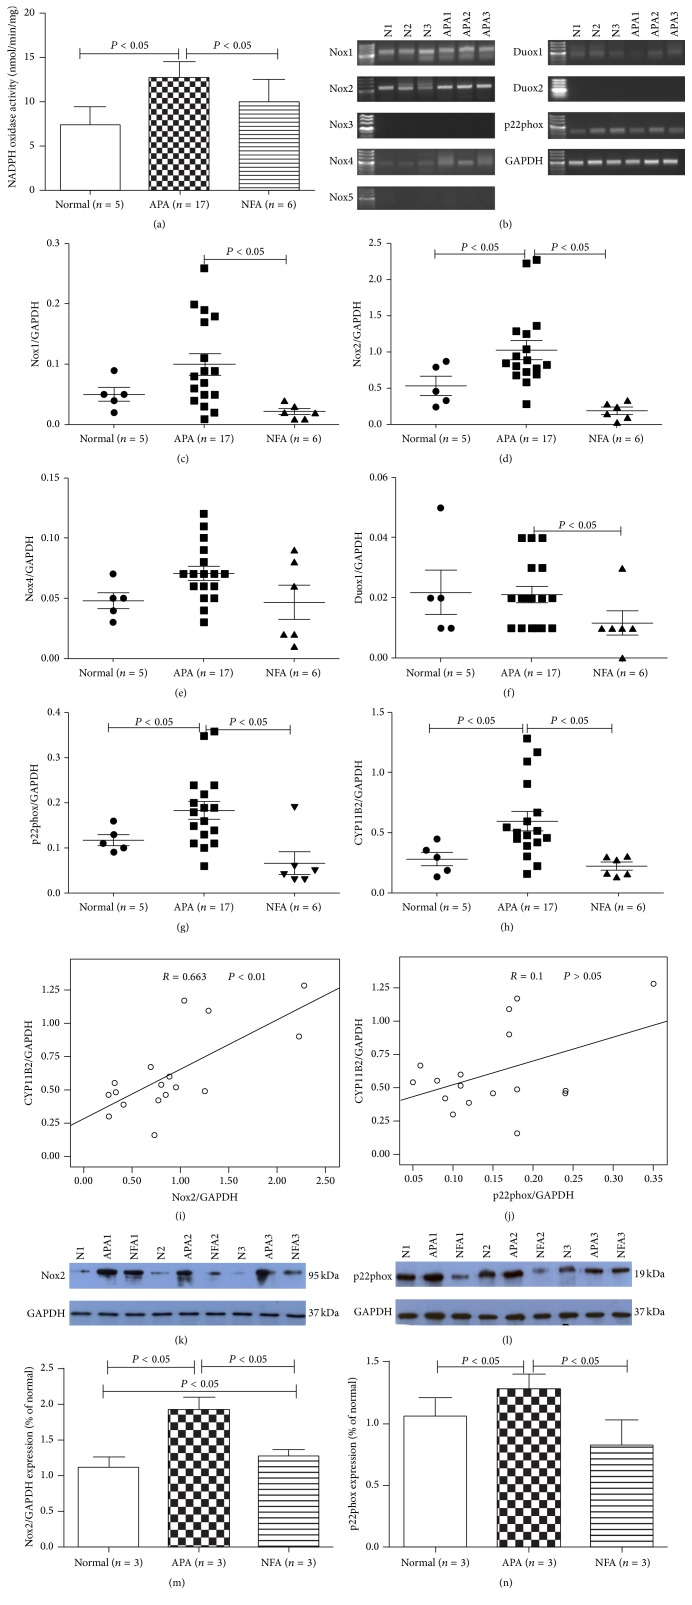 Activity and expression of Nox in different adrenal tissues. (a) Nox activity was detected in normal adrenocortical tissue, APA, and NFA by lucigenin chemiluminescence. (b) Expression of Nox1 – Nox5 , Duox1 , Duox2 , and p22phox mRNA in normal adrenocortical tissue and APA by RT-PCR. Signals for Nox1 , Nox2 , Nox4 , Duox1 , and p22phox were detected in normal adrenal tissue and APA. (c–h) Relative expression of Nox1 , Nox2 , Nox4 , Duox1 , p22phox , and CYP11B2 in normal adrenocortical tissue, APA, and NFA measured by Q-PCR. Nox2 , p22phox , and CYP11B2 were primarily expressed in APA. (i-j) Correlation between CYP11B2 mRNA with Nox2 , CYP11B2 , and p22phox mRNA in APA. A positive correlation between Nox2 and CYP11B2 mRNA was found. (k–n) Western blot analysis of Nox2 and p22phox in normal adrenocortical tissue, APA, and NFA. Nox2 and p22phox were enhanced in APA compared with normal adrenocortical tissue and NFA. Results of densitometric analysis of Nox2 and p22phox proteins normalized to GAPDH were shown.